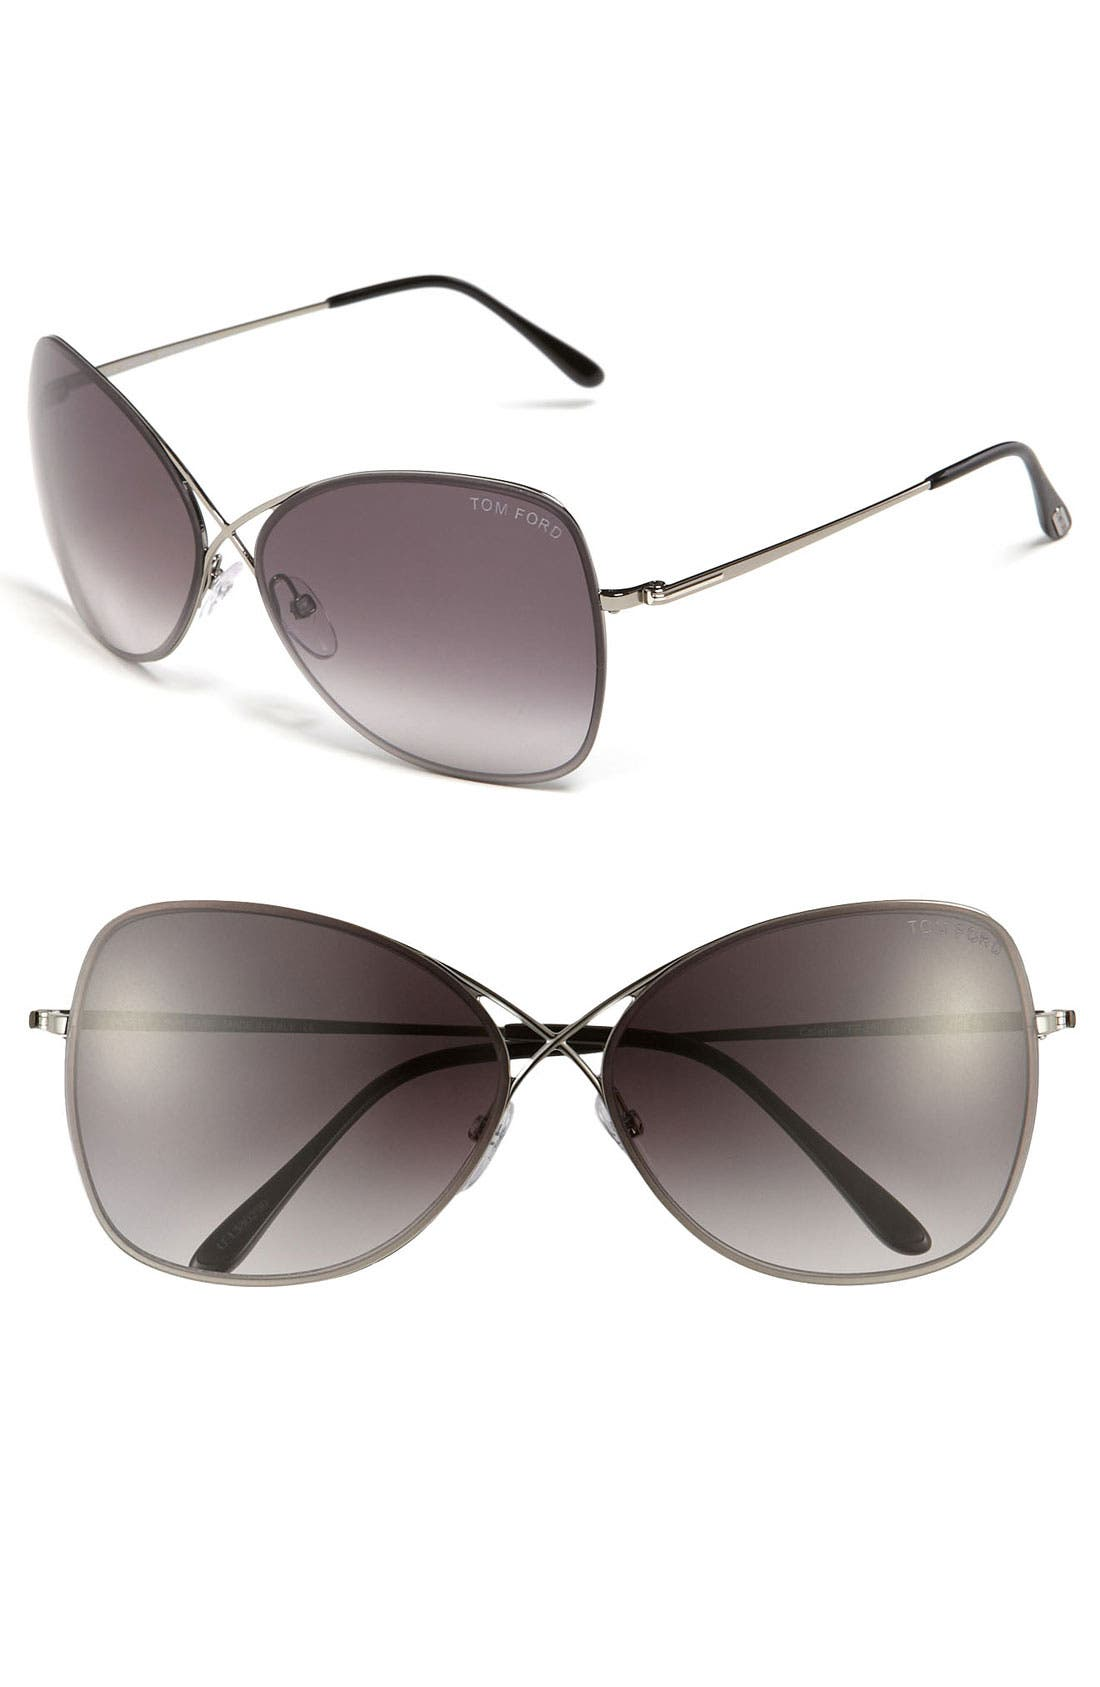 'Colette' 63mm Oversized Sunglasses,                         Main,                         color, Shiny Gunmetal/ Grey Gradient